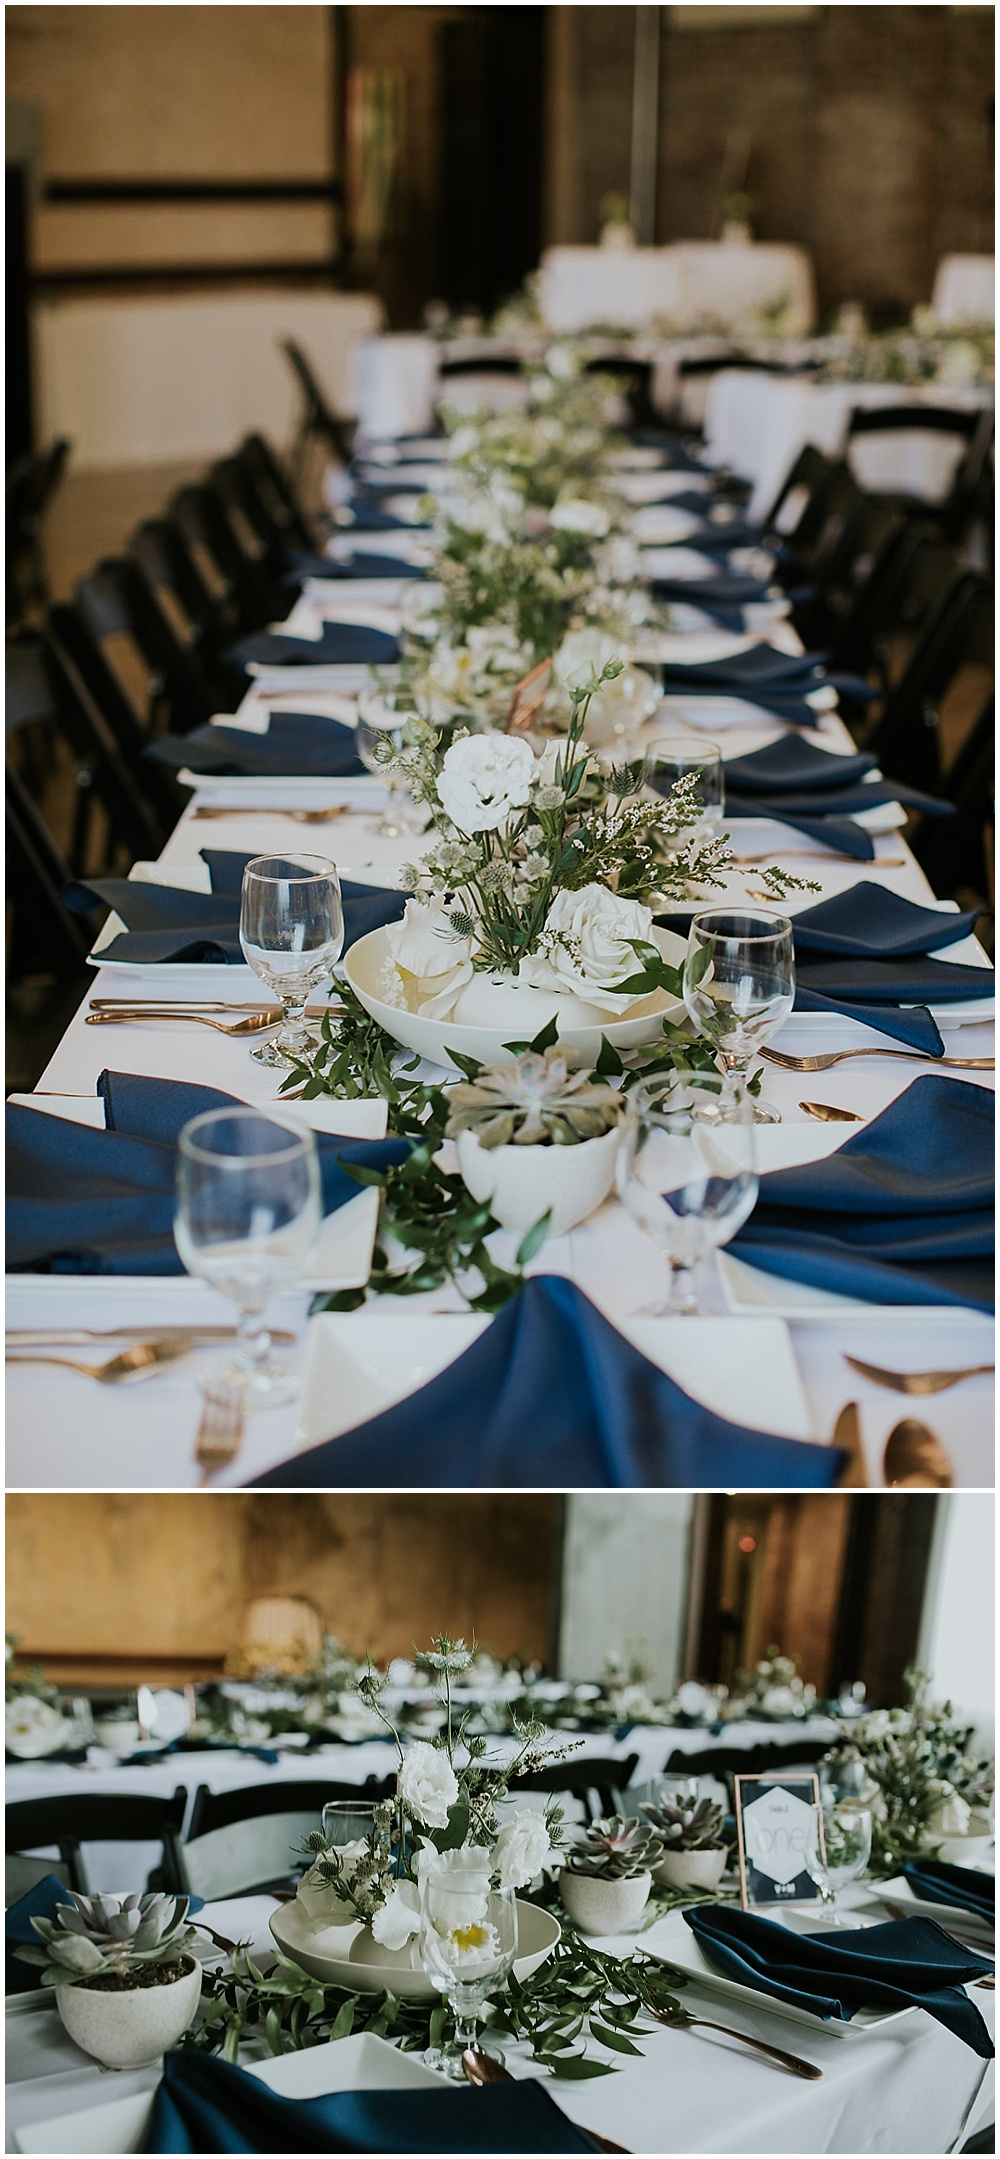 Beautiful wedding tablescape with navy napkins on white linens with assortments of succulents and white roses | Korean-American intimate multicultural wedding in Neidhammer coffee shop